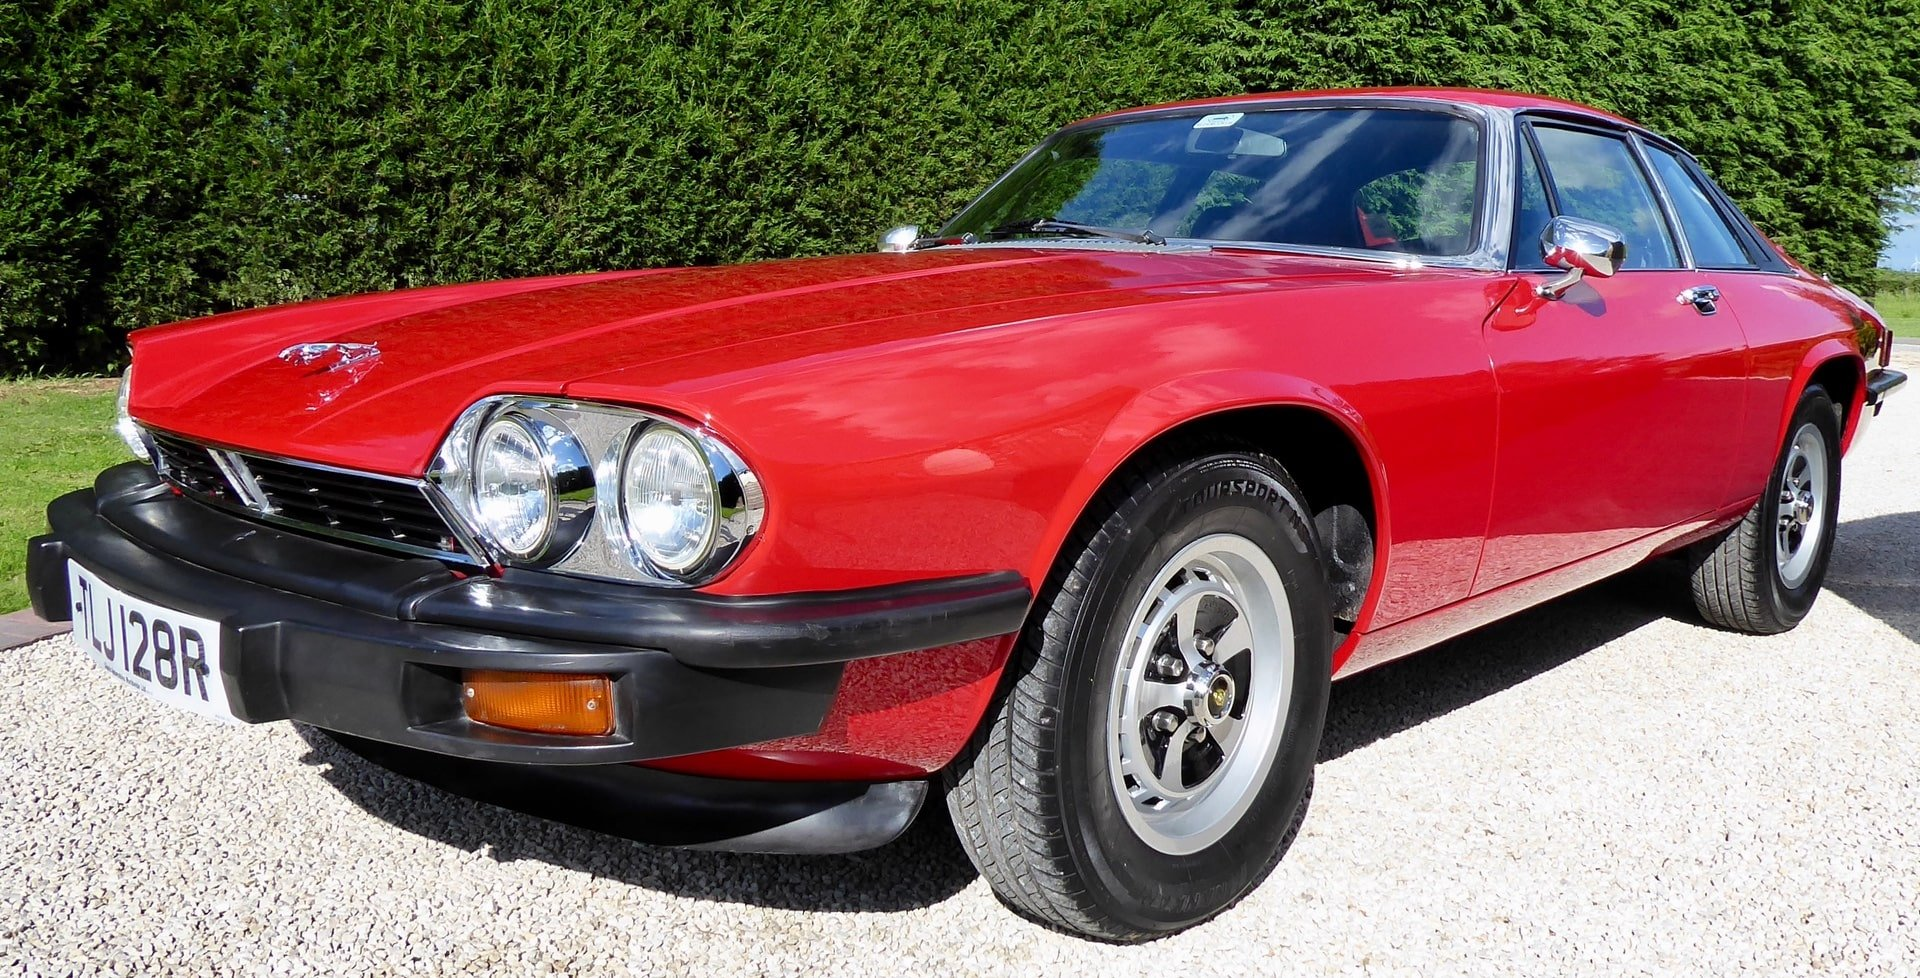 1977 Jaguar XJ-S Pre HE ( Stunning ) For Sale   Car And Classic